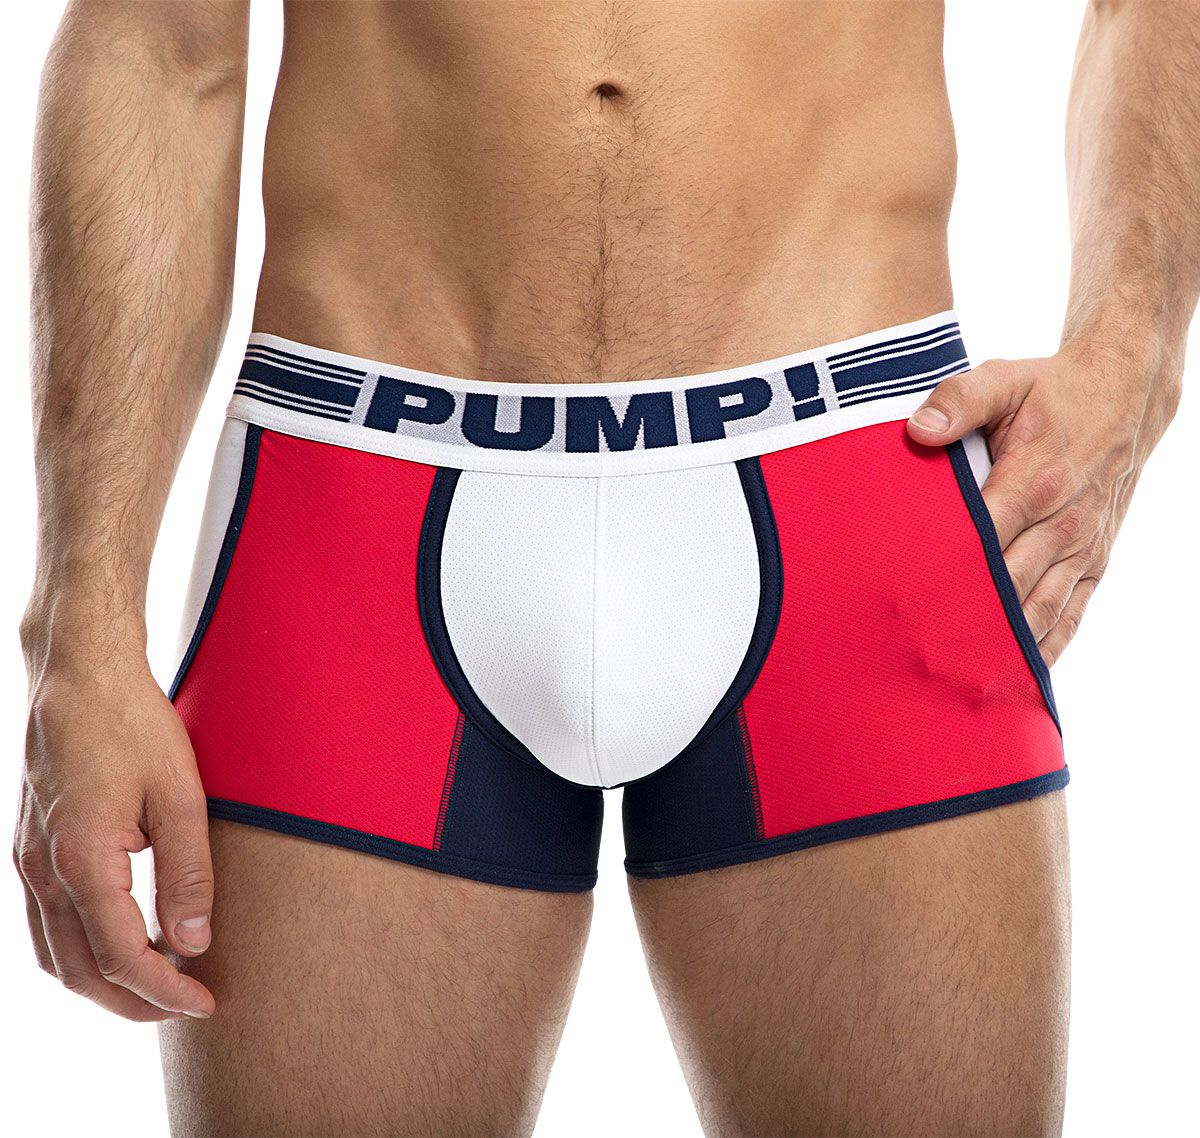 PUMP! Boxers ACADEMY JOGGER 11073, red